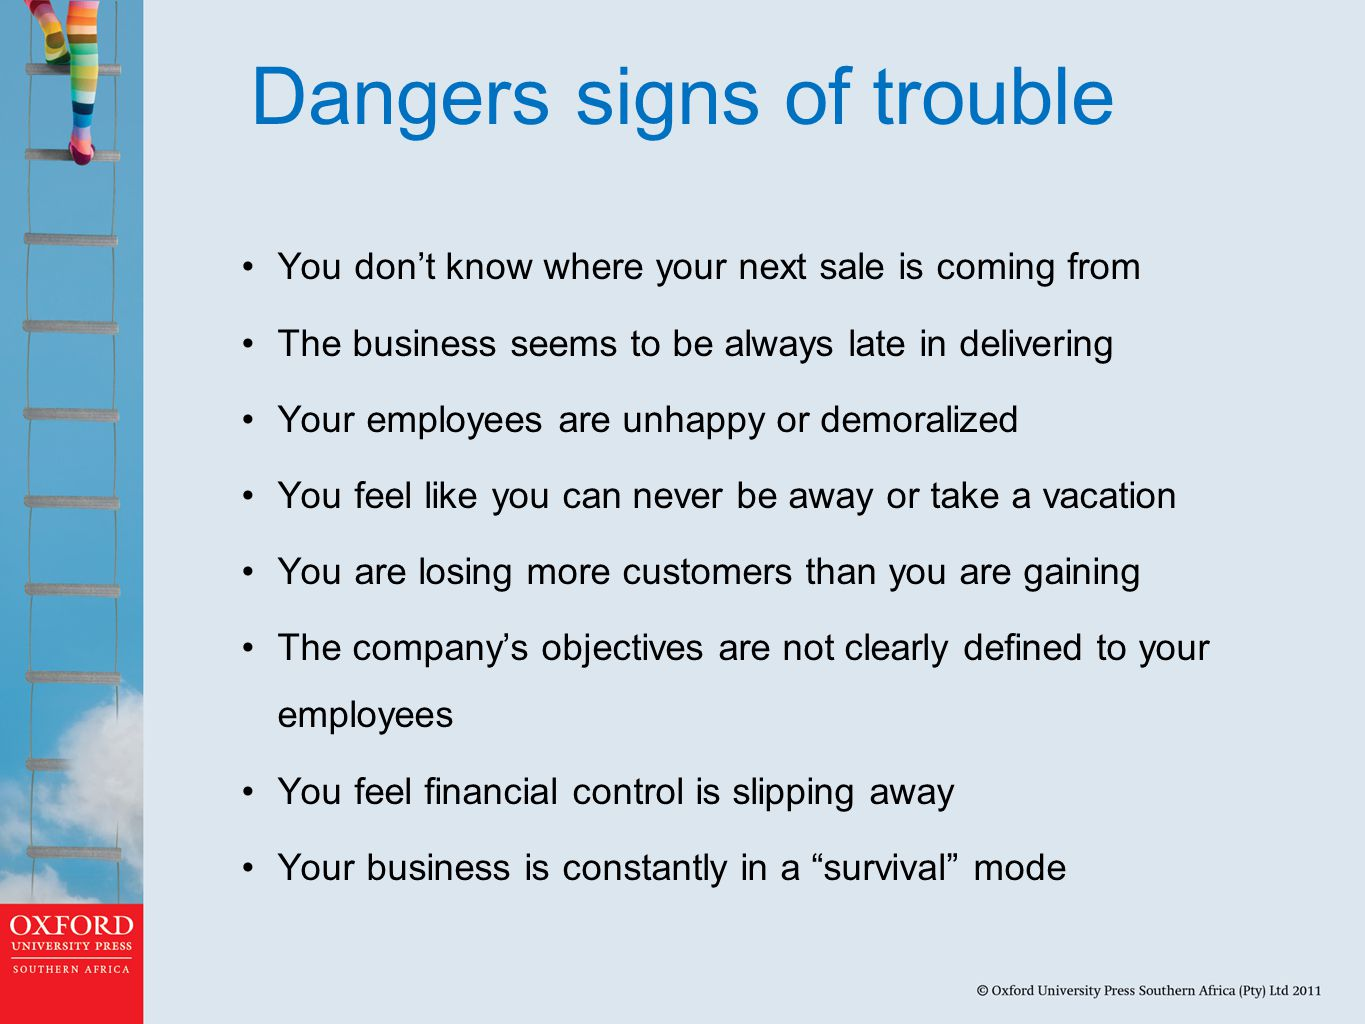 Stages in business failure Decline: A business is in decline when its performance and operations slows down over consecutive periods and it experiences distress in continuing operations Failure: A business fails when it involuntarily becomes unable to attract new debt or equity funding to reverse the decline process; consequently, it cannot continue to operate under the current ownership and management Turnaround: Turnaround occurs when a business has been able to recover from the decline stage which threatened its existence in such a way that it is able to resume normal operations and achieve performance acceptable to its stakeholders